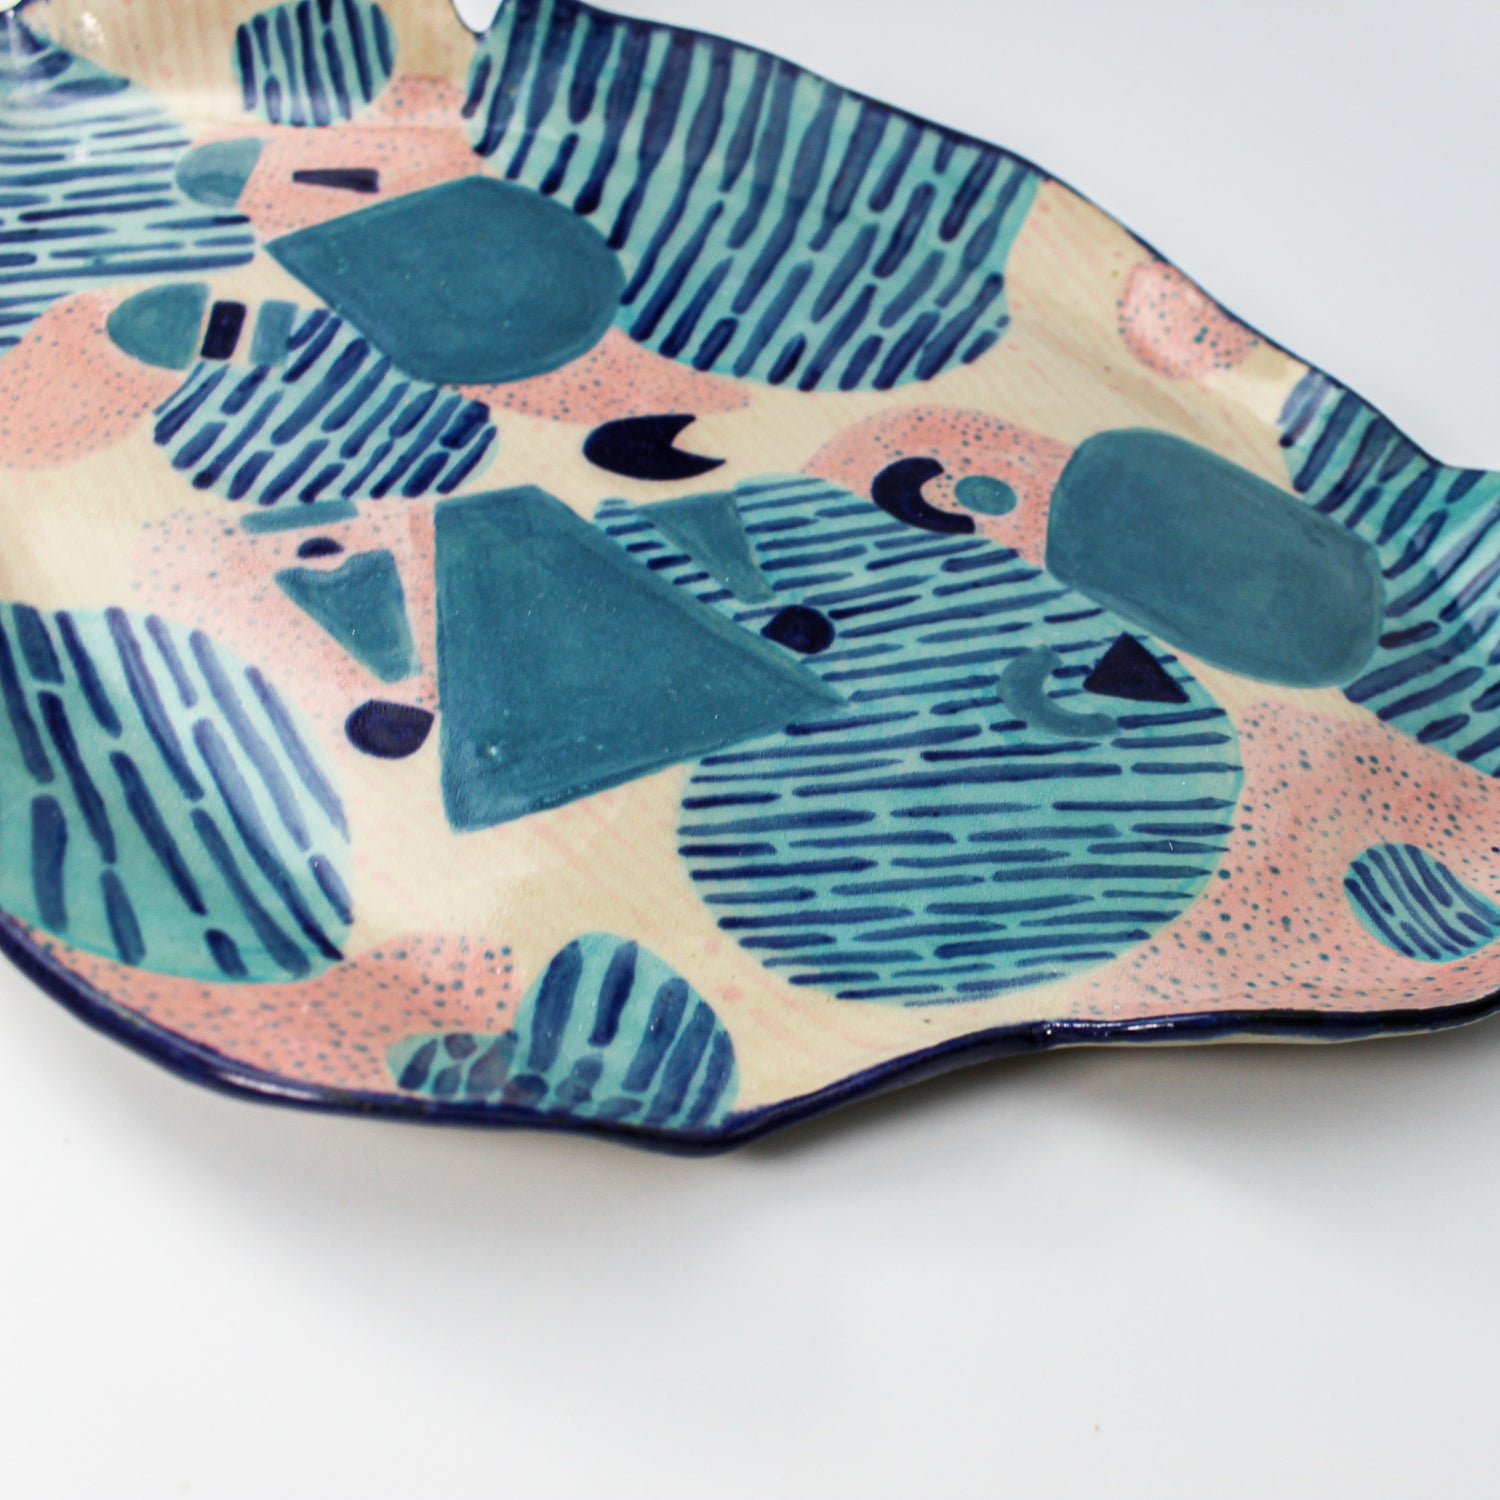 Side view of pink and blue pottery platter